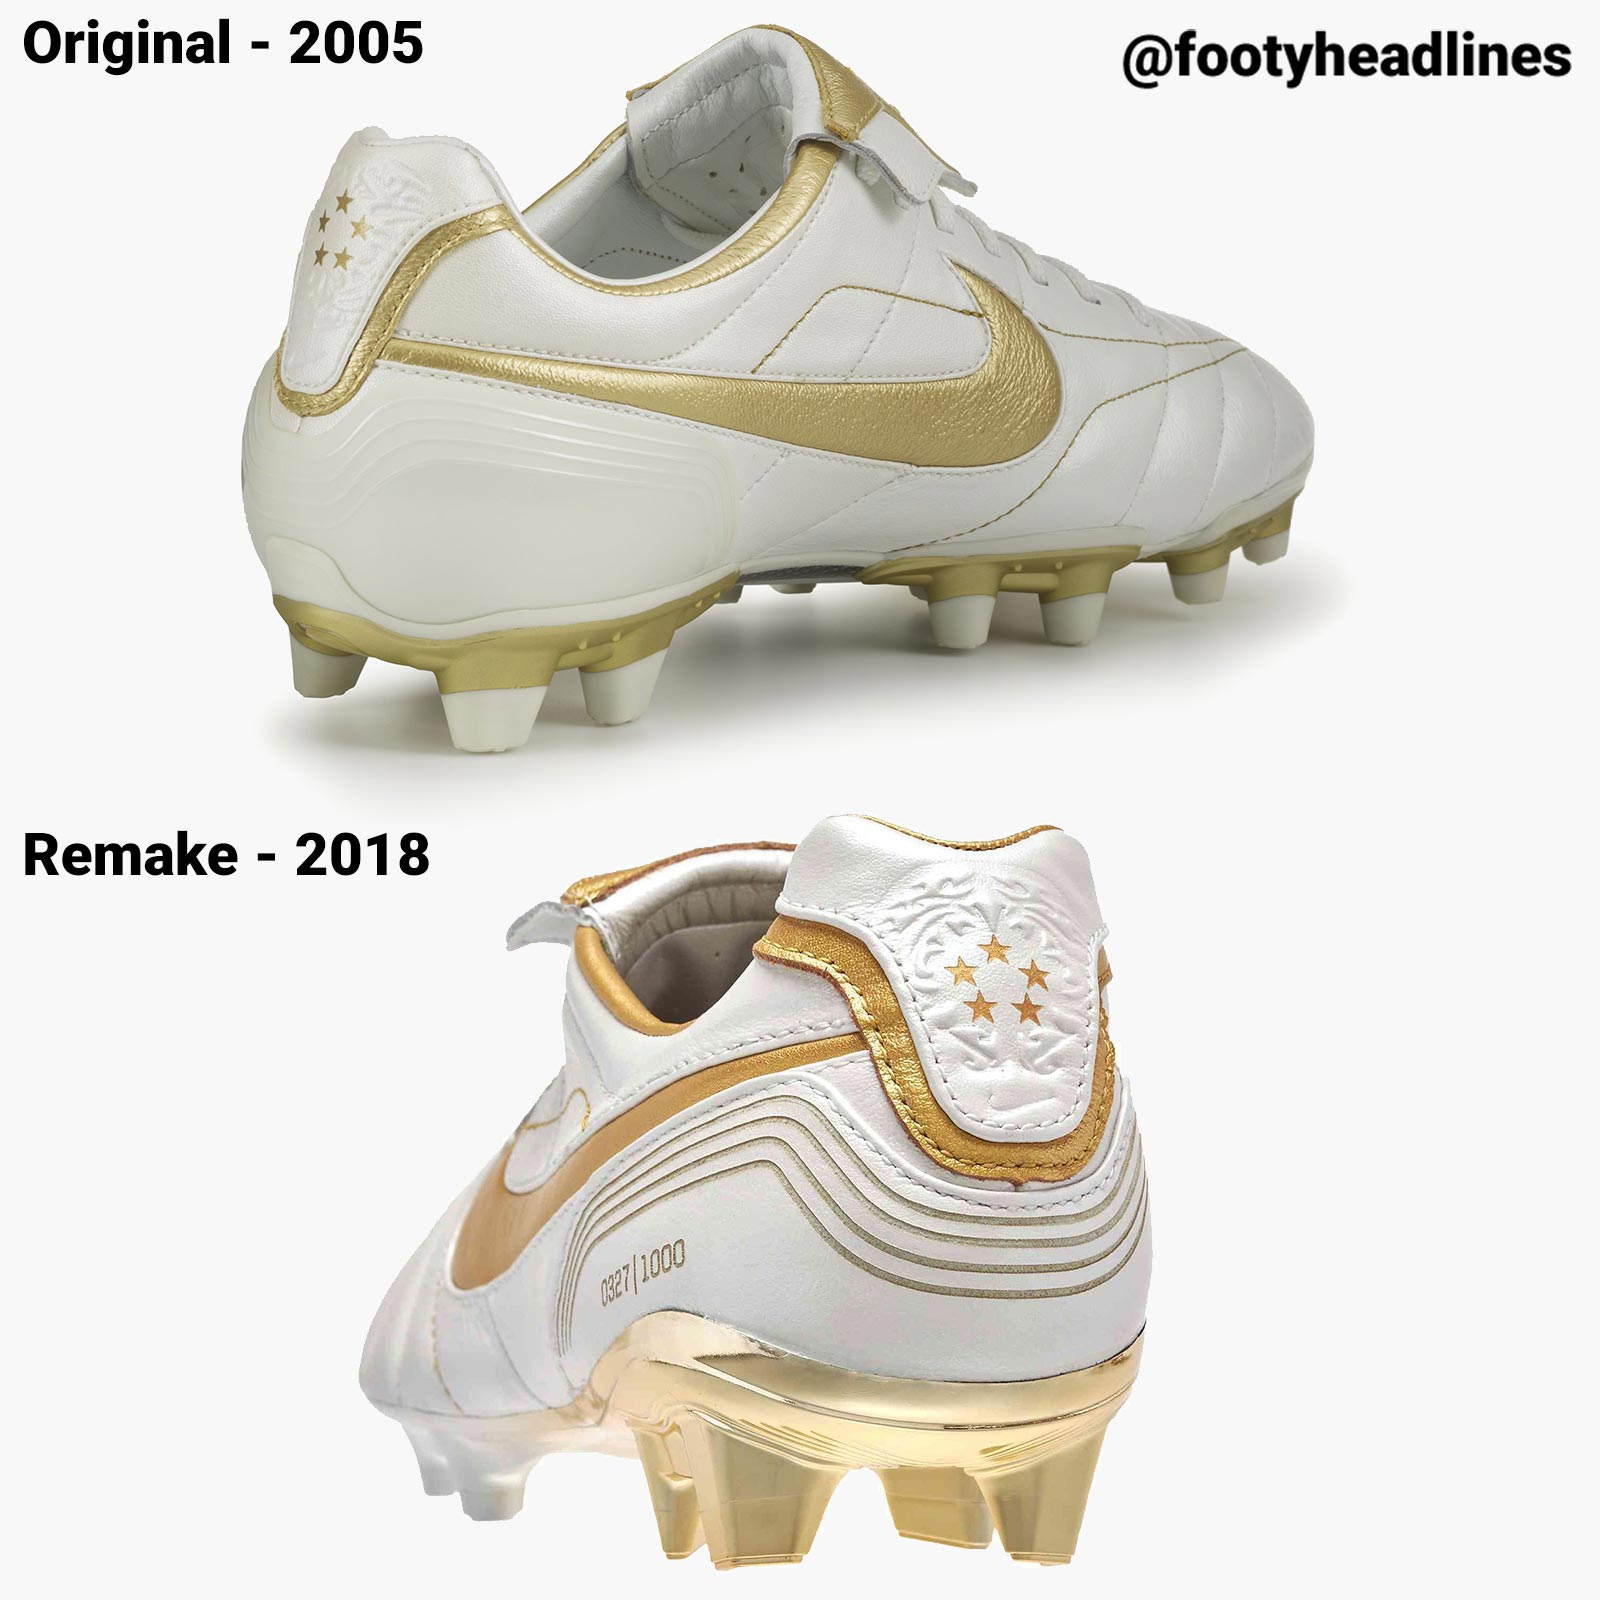 4c378519610 Nike Air Legend Tiempo Ronaldinho - 2018 Remake vs 2005 Original ...